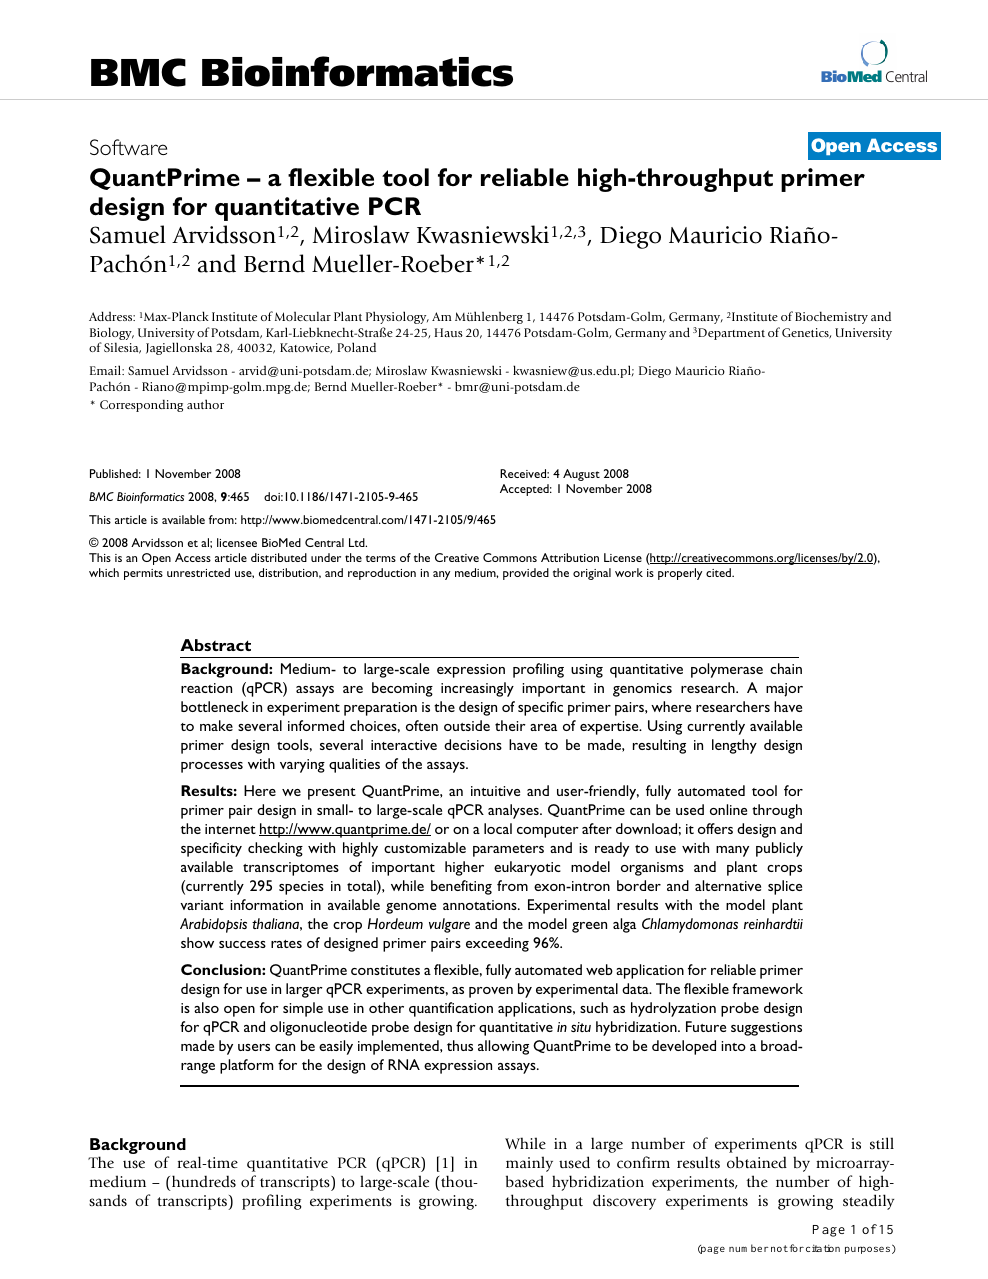 Quantprime A Flexible Tool For Reliable High Throughput Primer Design For Quantitative Pcr Topic Of Research Paper In Biological Sciences Download Scholarly Article Pdf And Read For Free On Cyberleninka Open